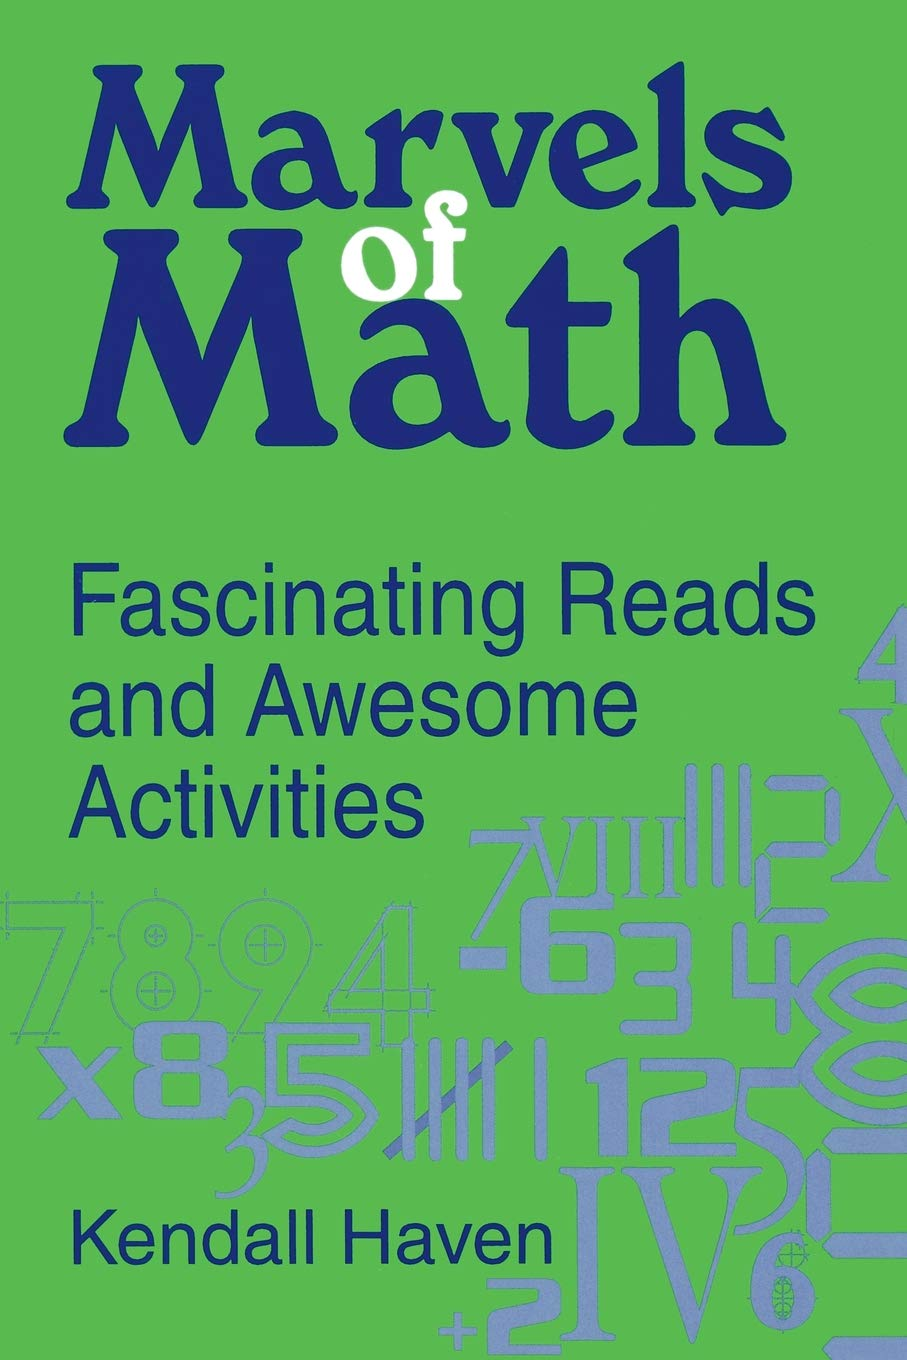 Amazon com: Marvels of Math: Fascinating Reads and Awesome